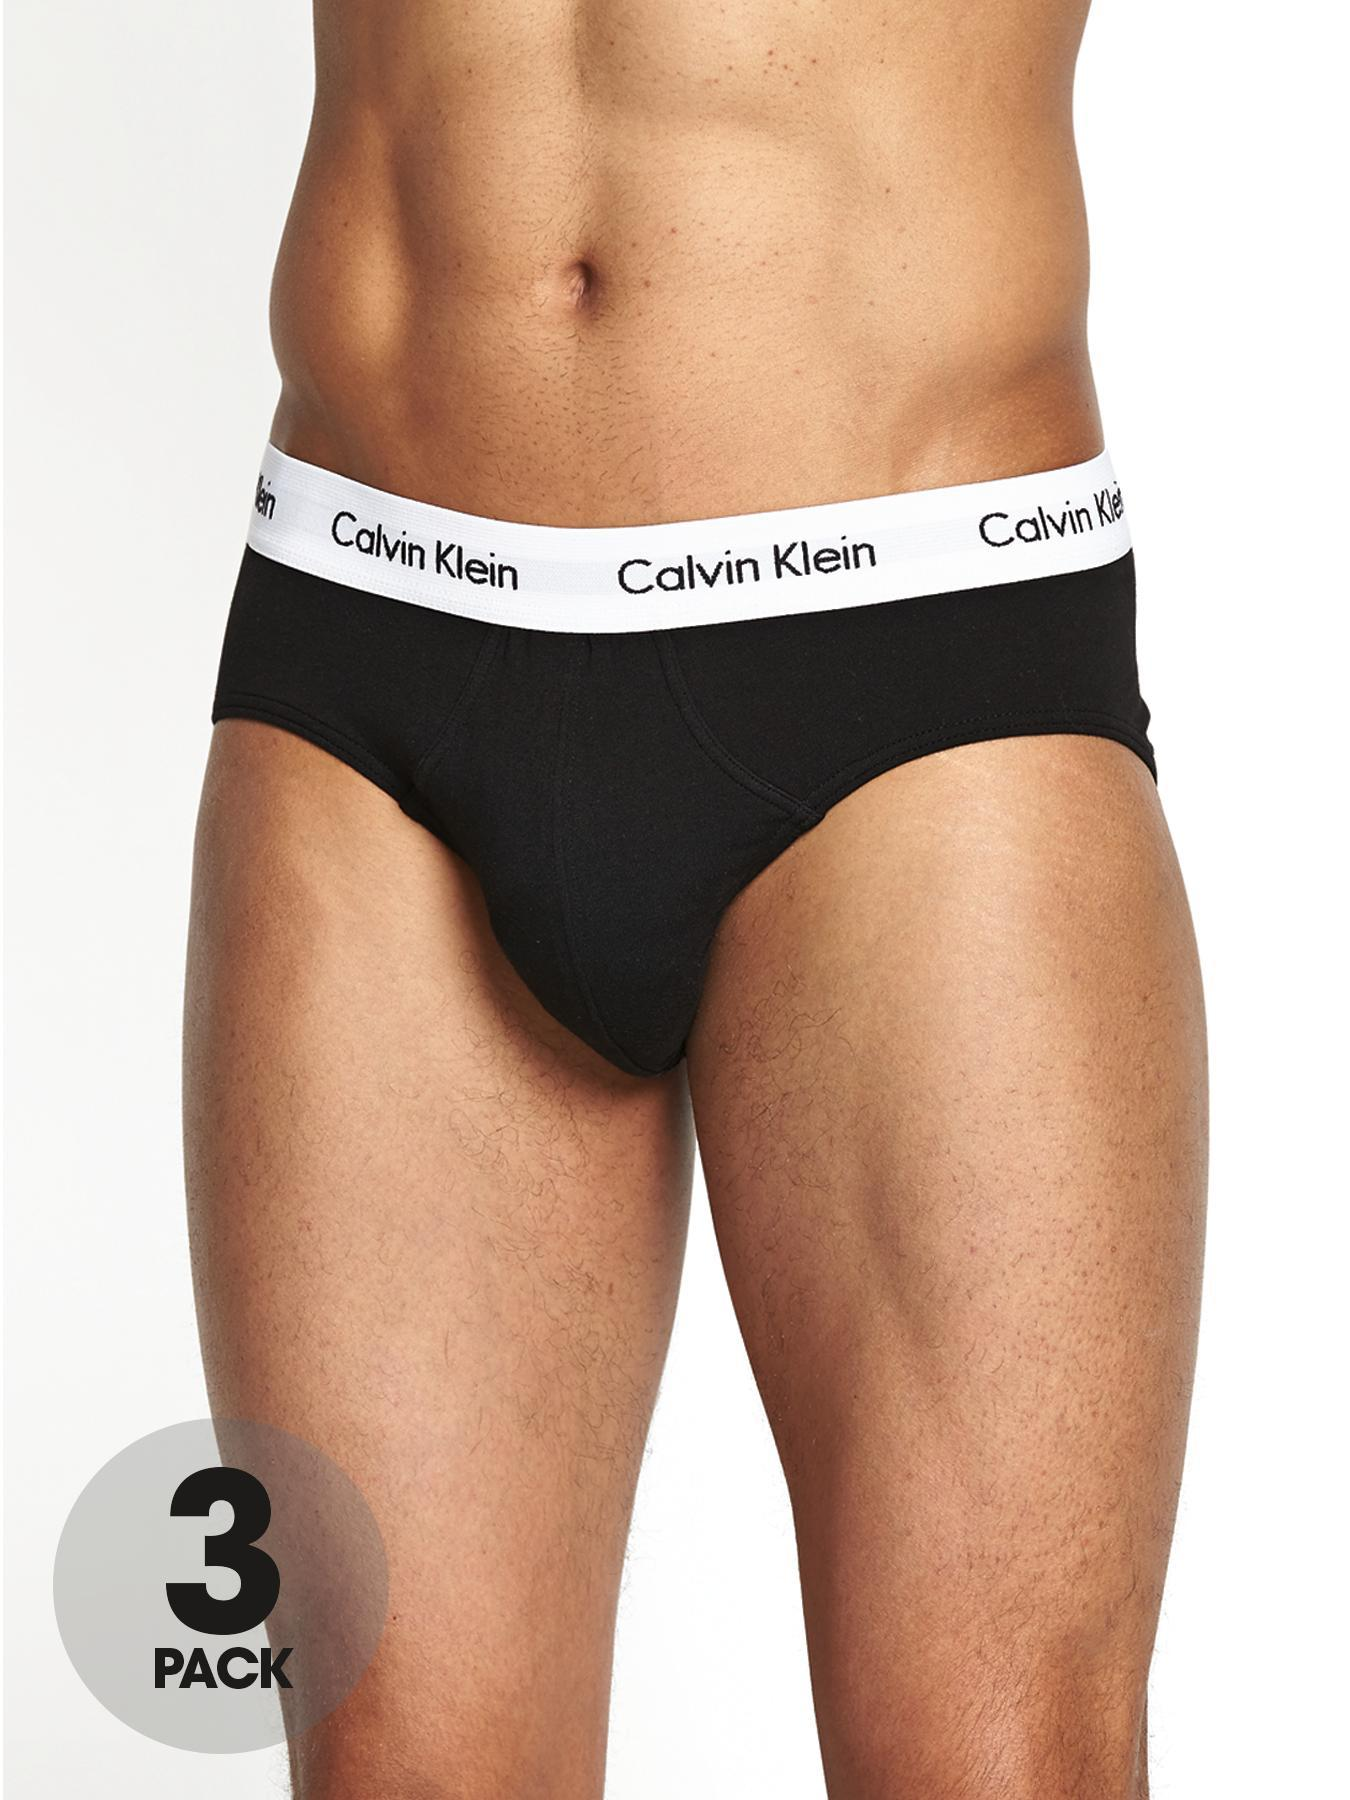 Mens Briefs (3 Pack), Black